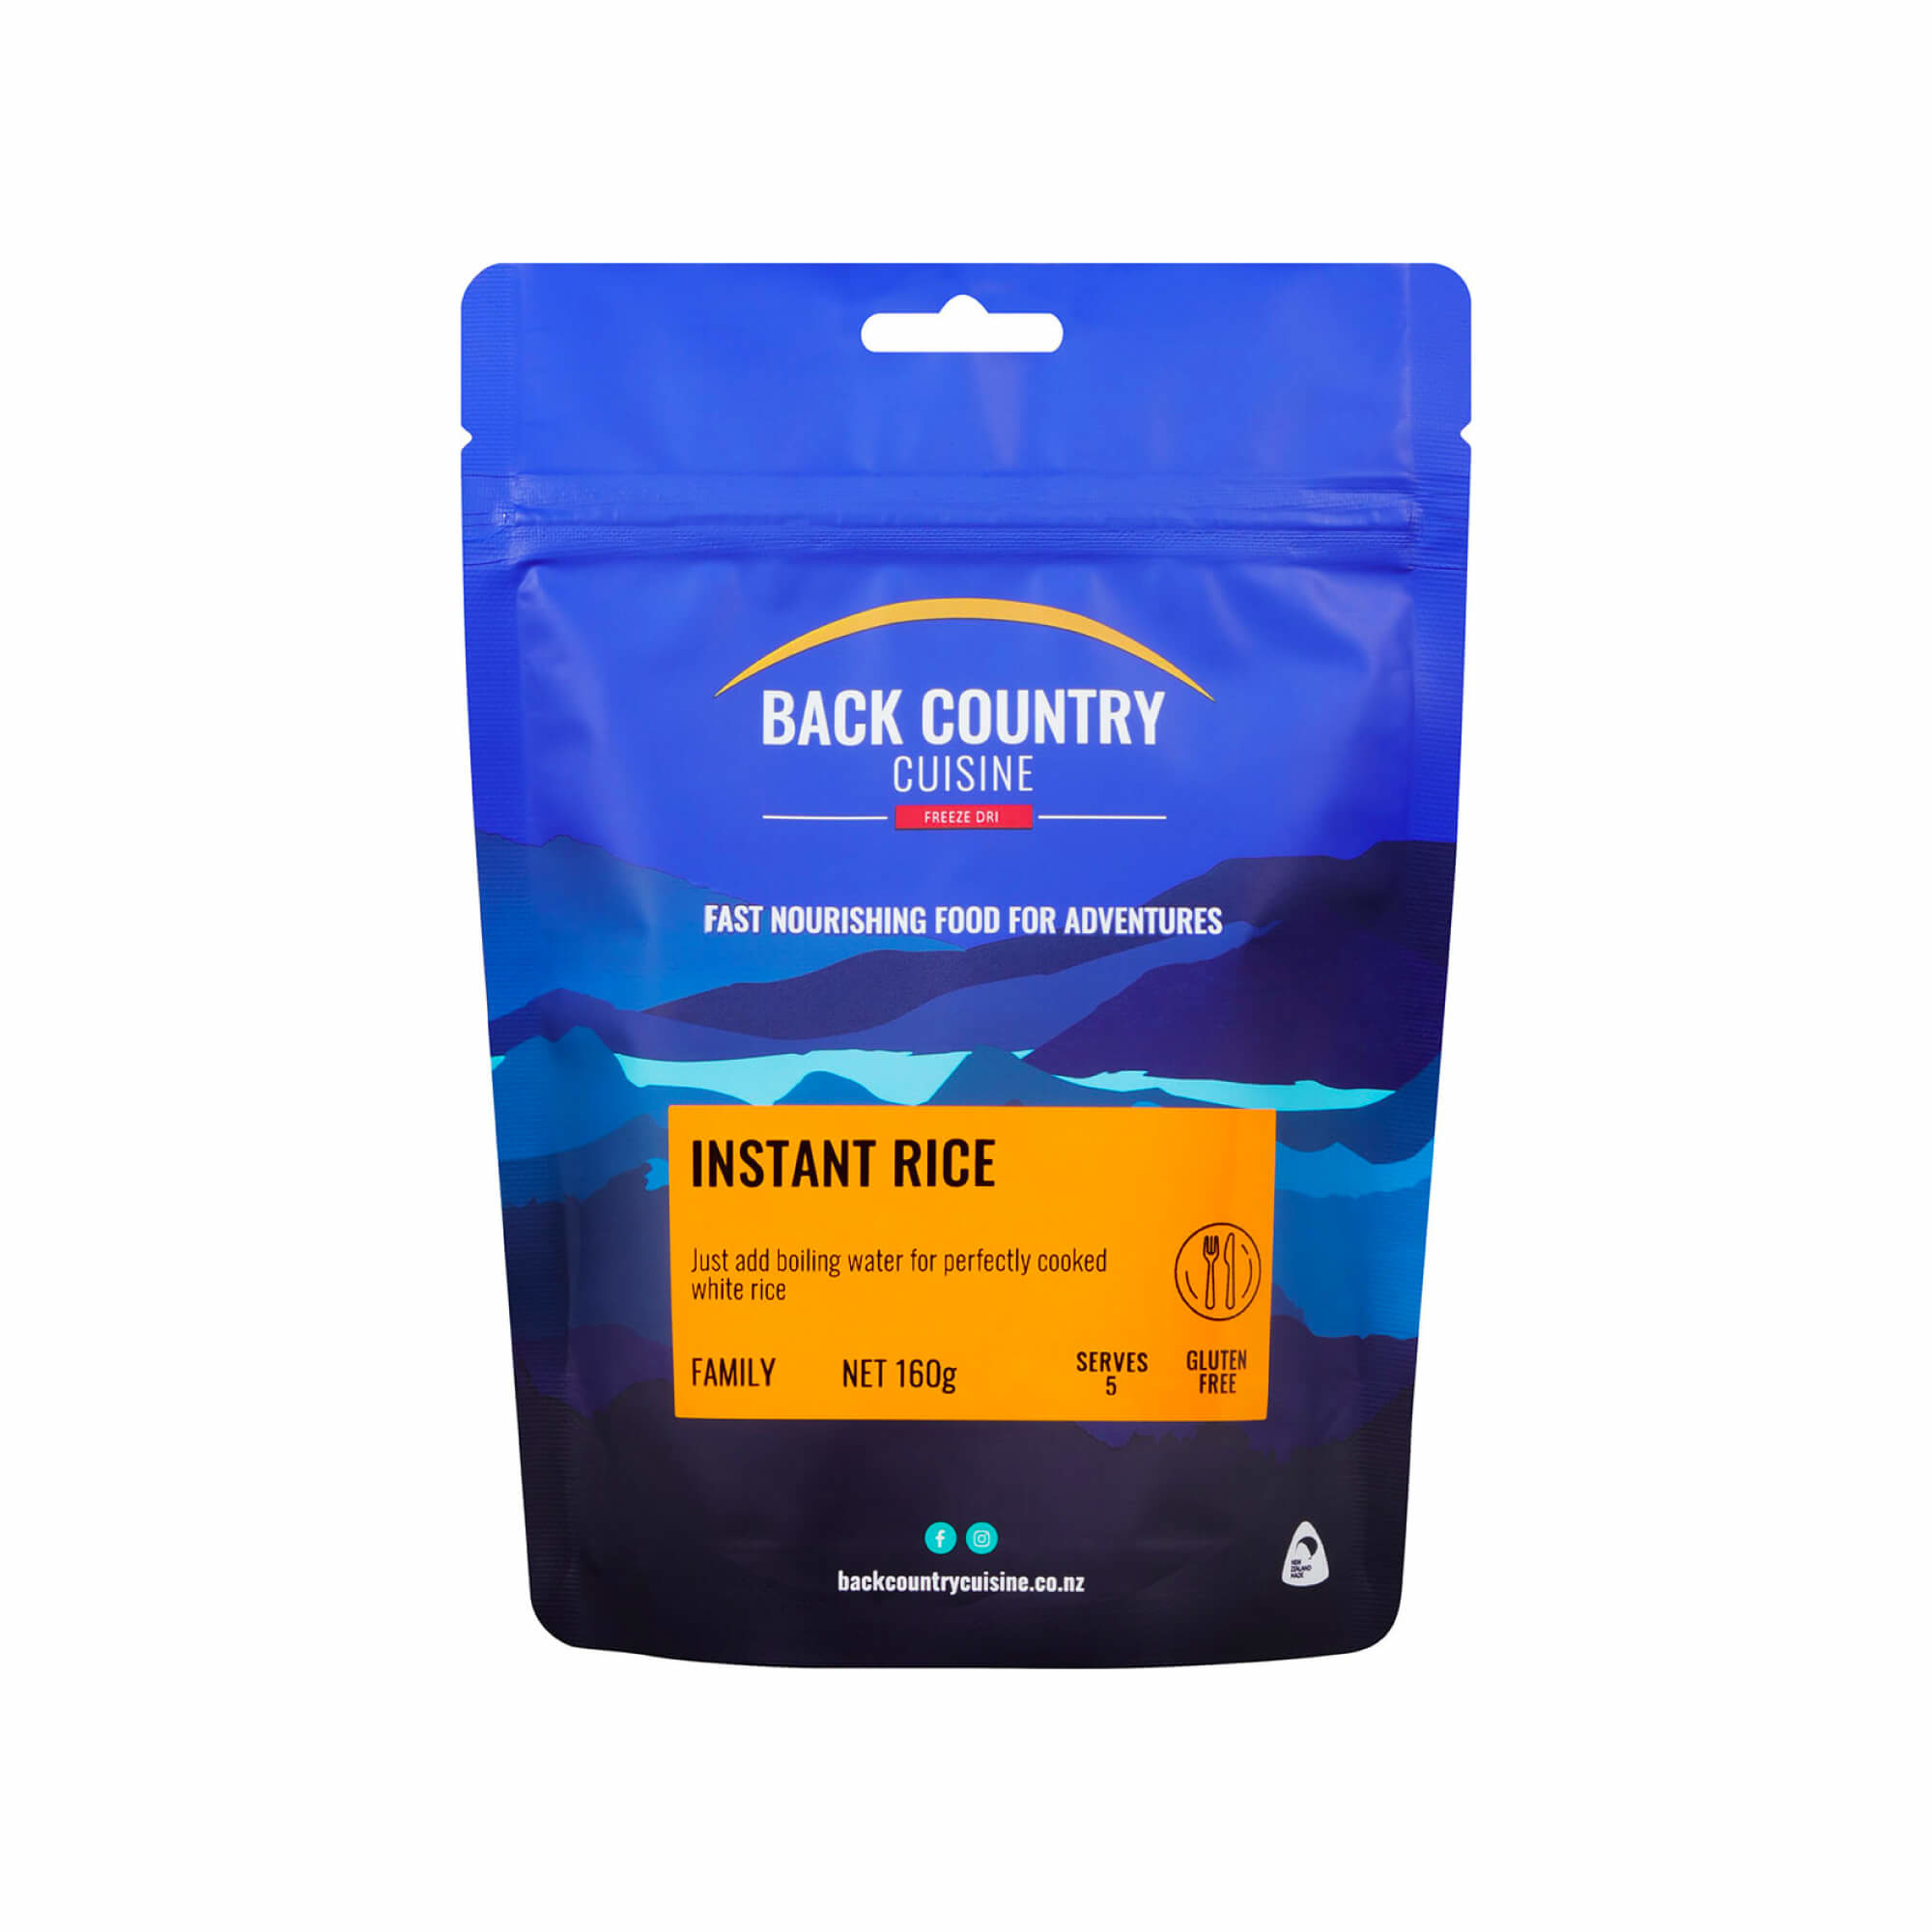 Back Country Cuisine Instant Rice Family-1